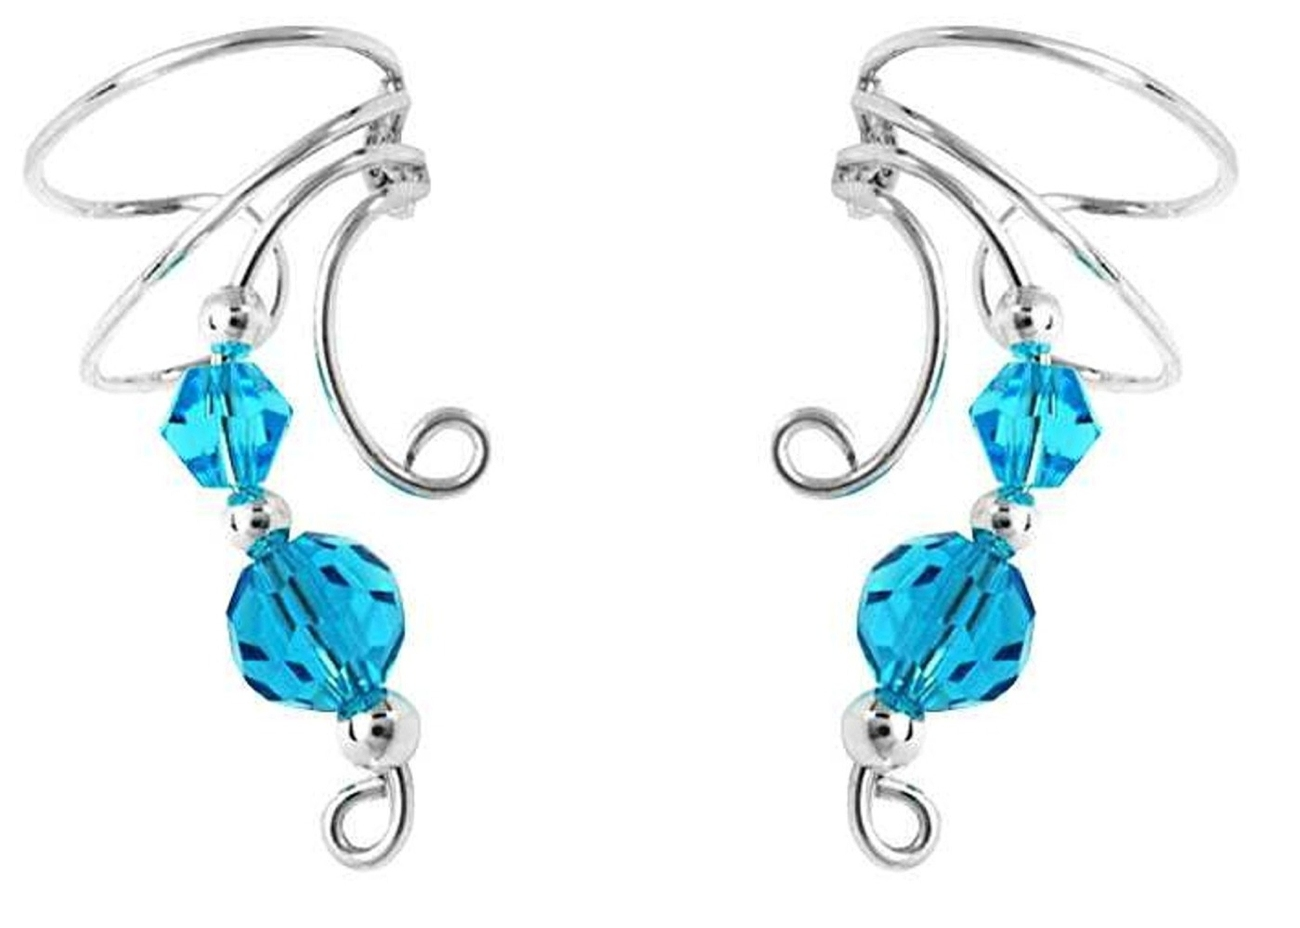 Two Blue Crystal Beads Wave Ear Cuff Wrap Set